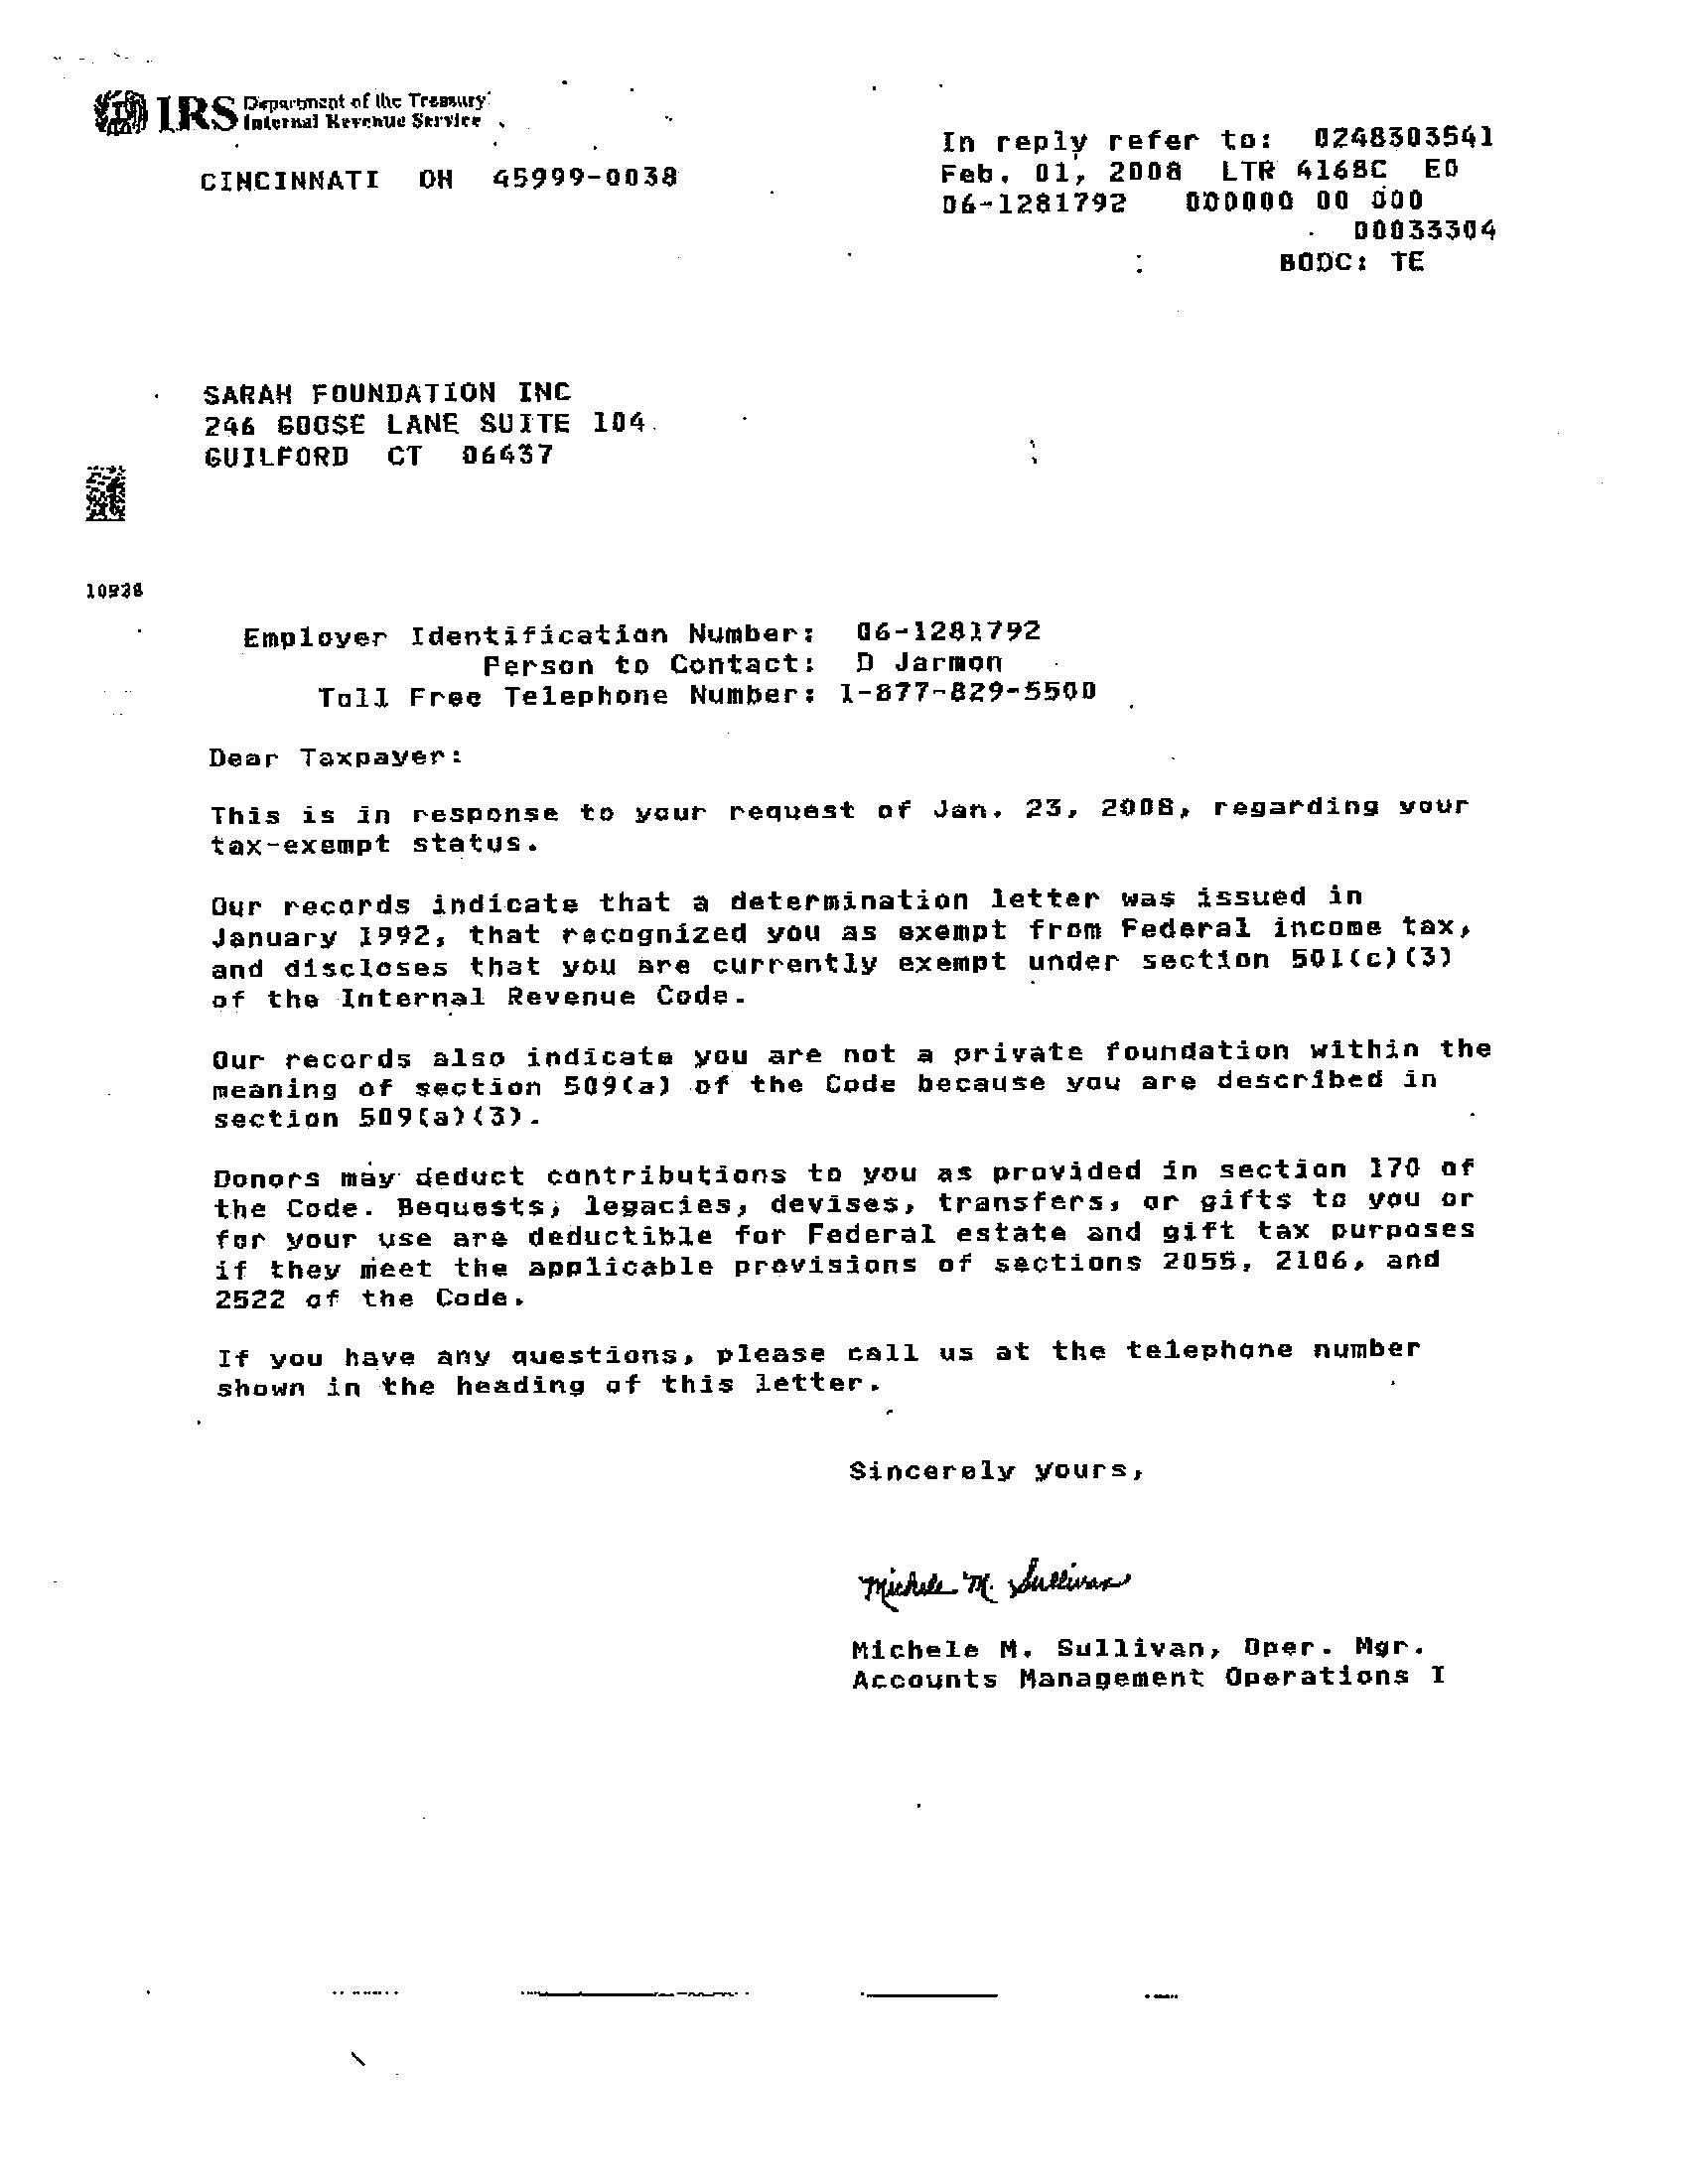 IRS-501c3-letter